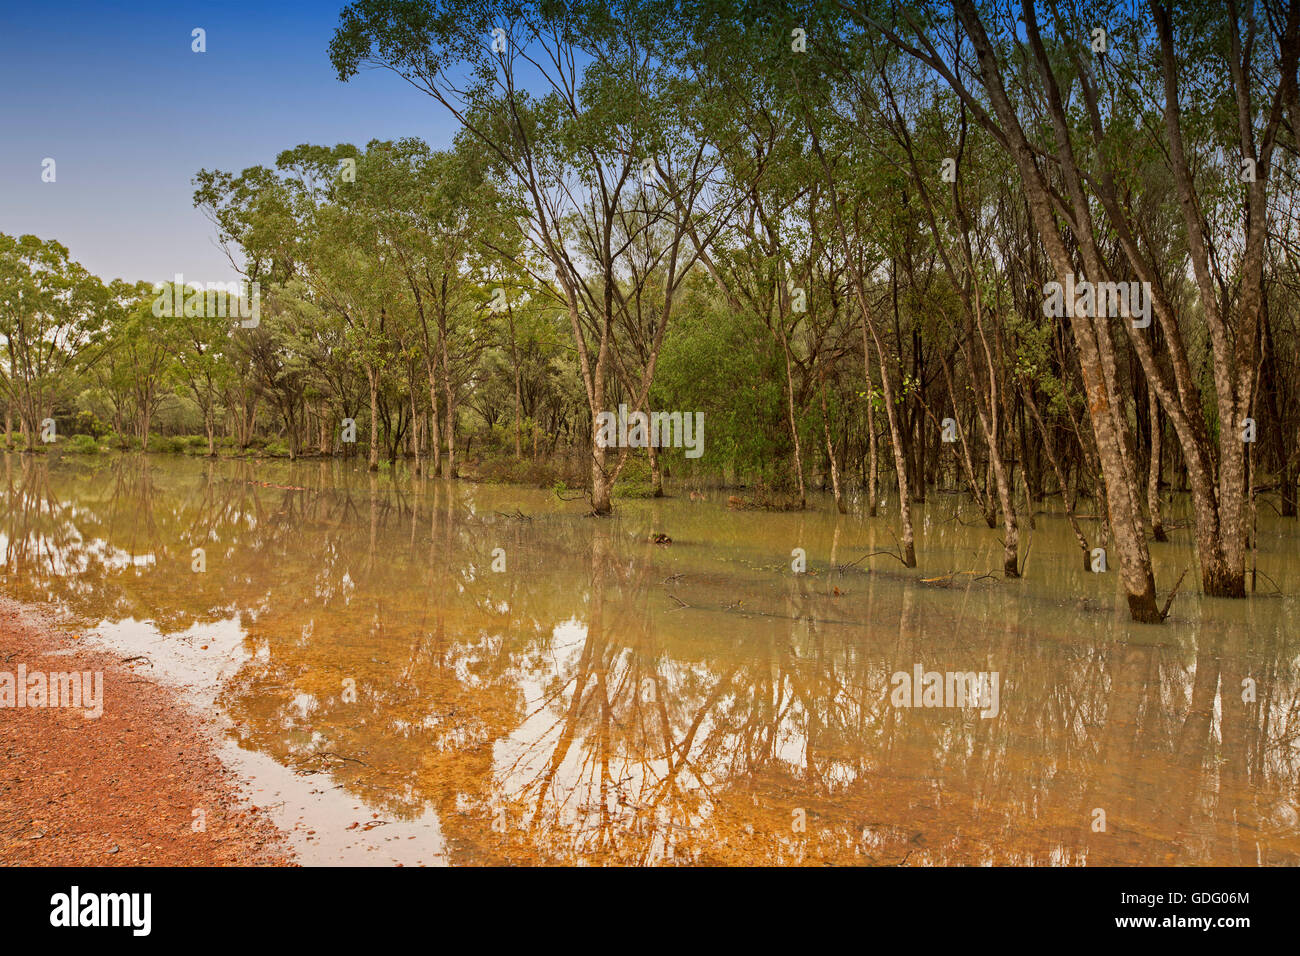 australia stock queensland alamy city emerald australian of photo